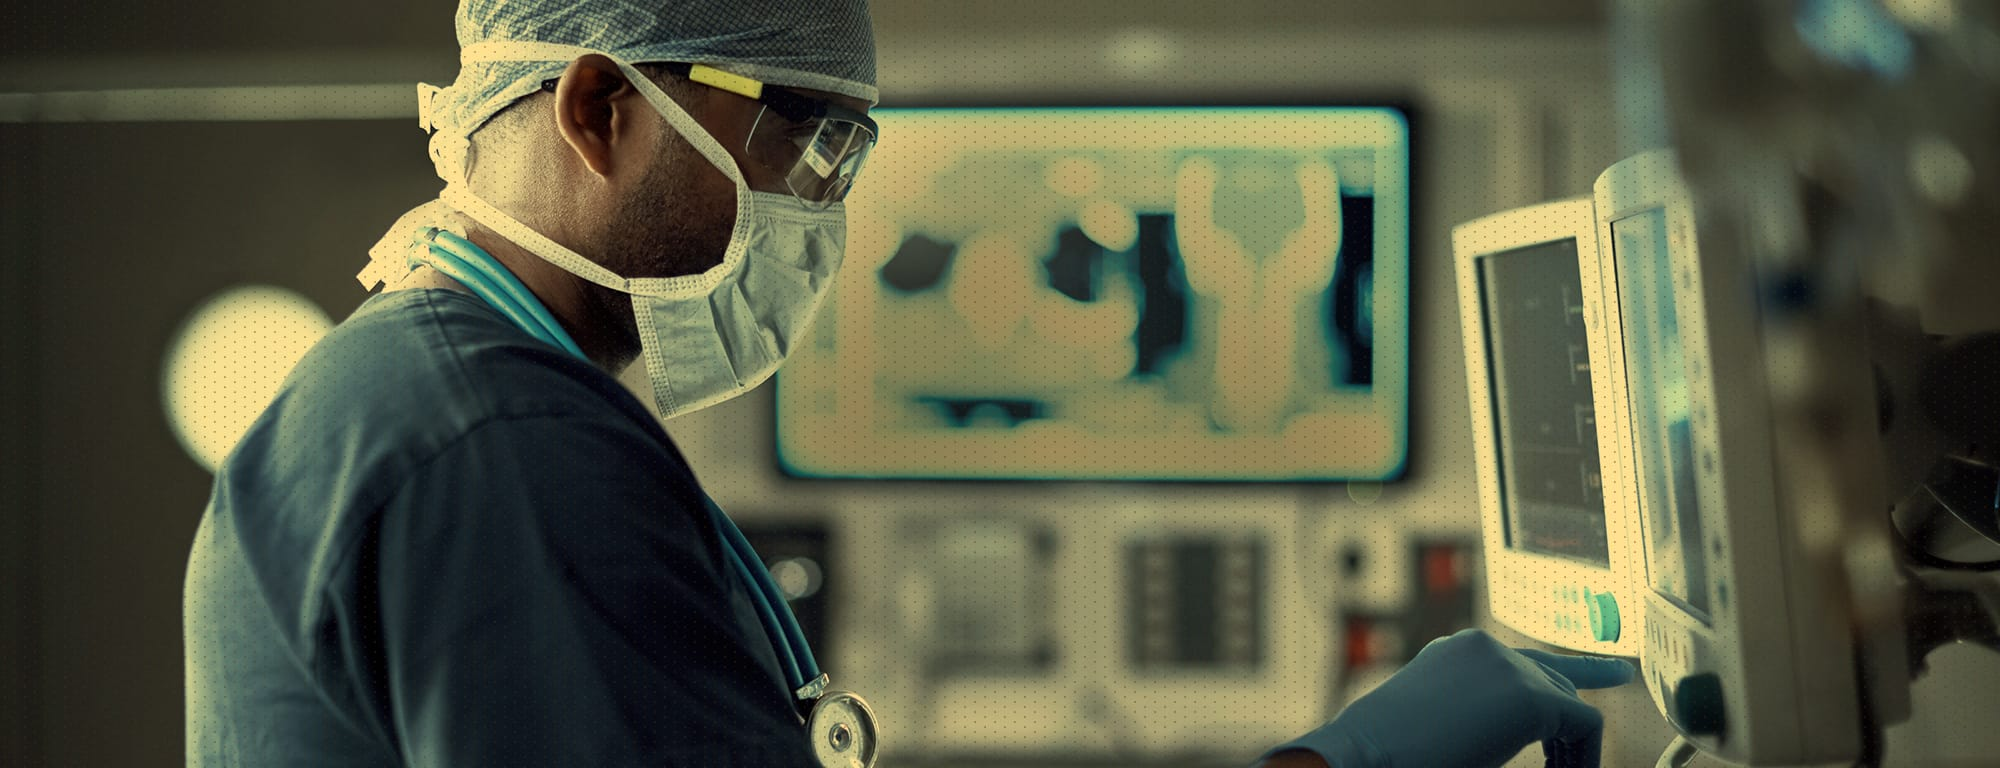 Medical doctor in operating room intently focuses on a computer screen